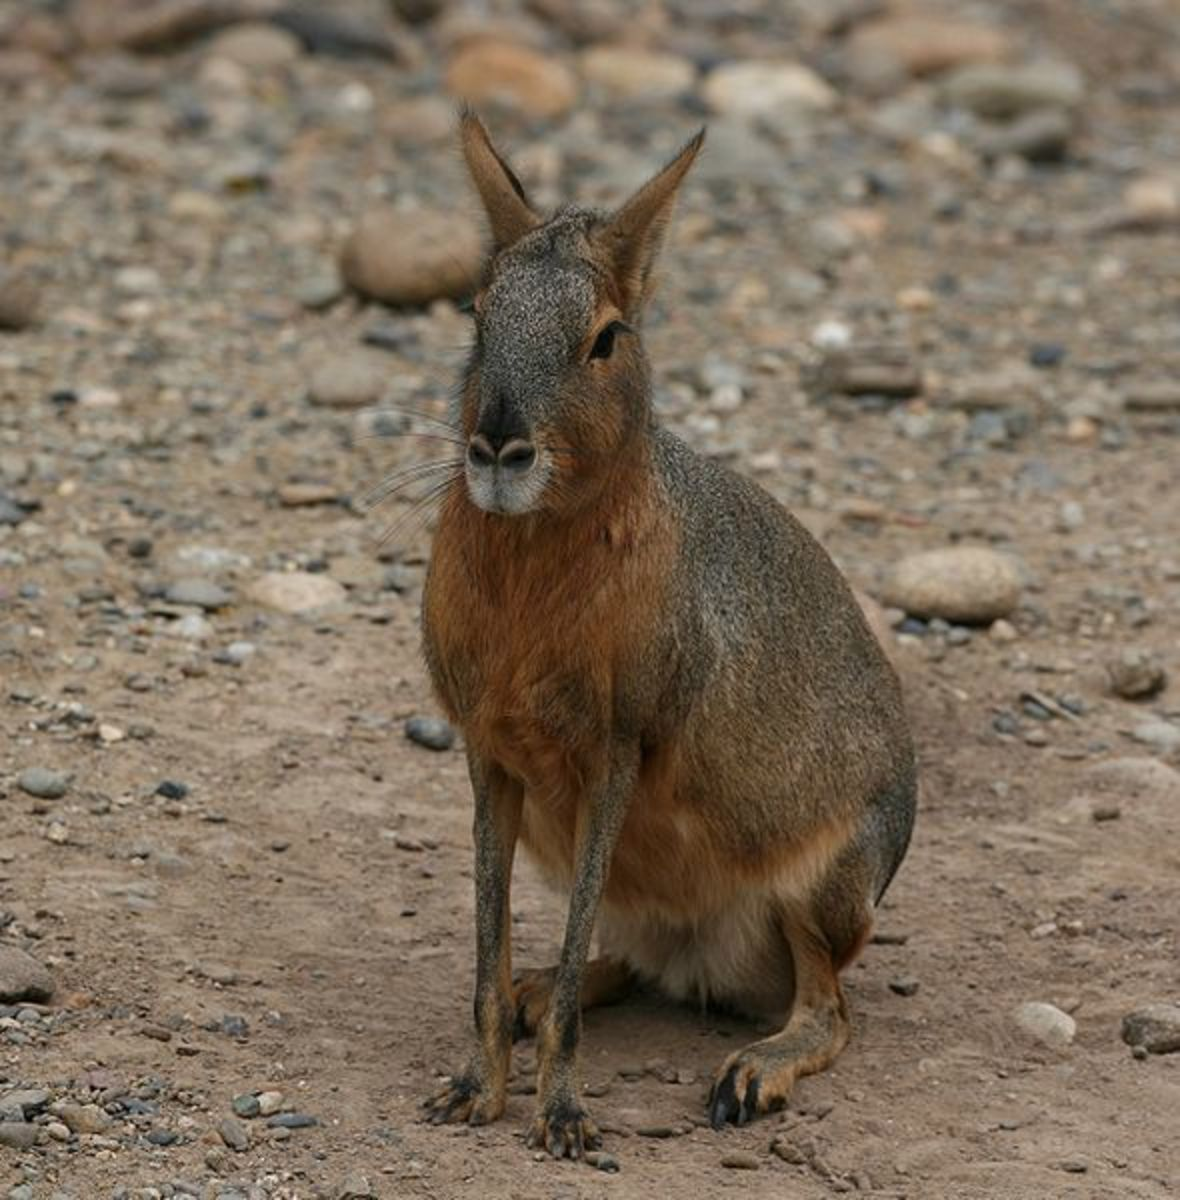 A Patagonian mara sits on its haunches to survey its surroundings.